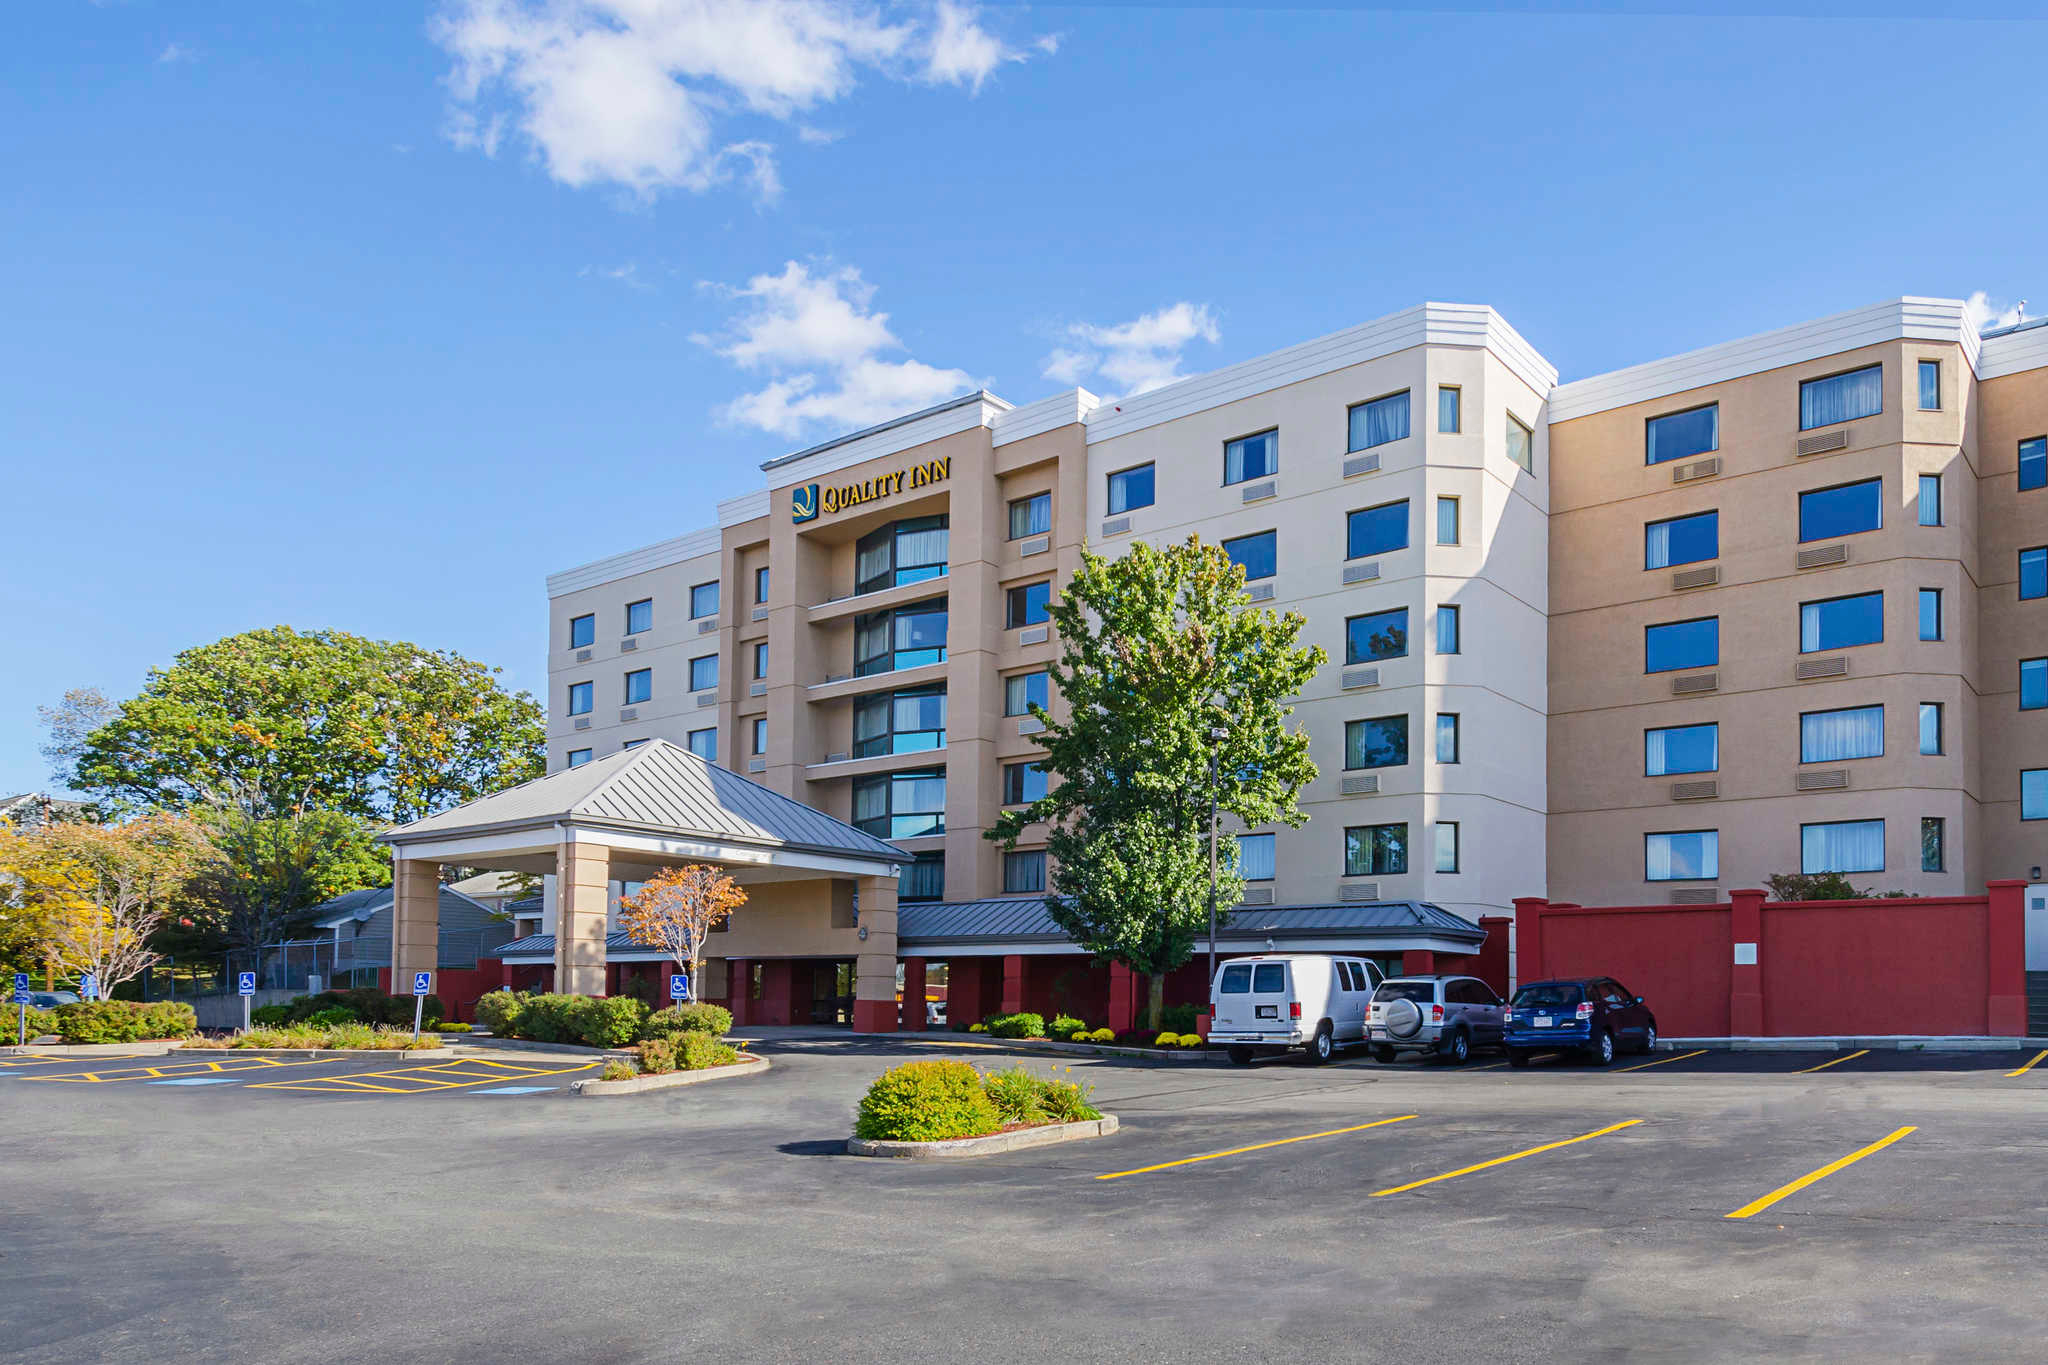 Quality inn in revere ma 781 324 1 for Quality hotel